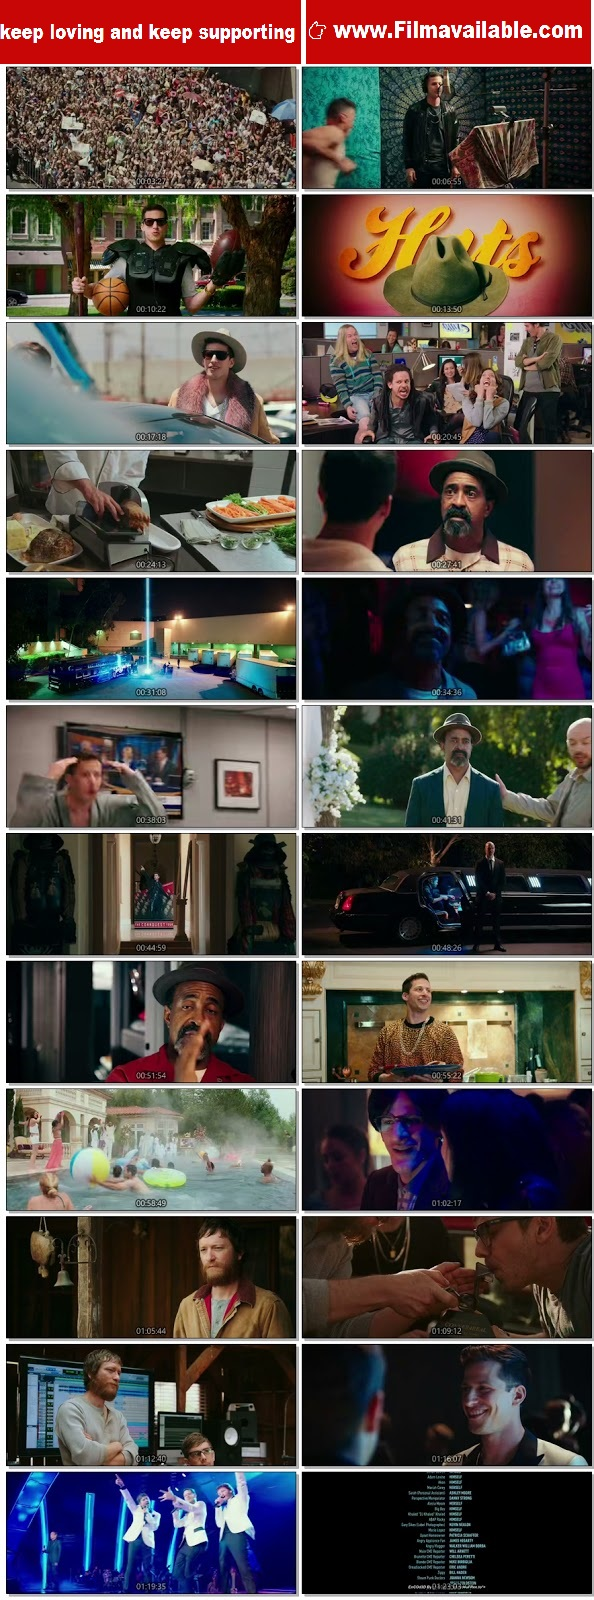 Popstar Never Stop Never Stopping 2016 latest movies free download, Popstar Never Stop Never Stopping 2016 hd movies download, Popstar Never Stop Never Stopping 2016 new movie download,Popstar Never Stop Never Stopping 2016 download free movies online, Popstar Never Stop Never Stopping 2016 hd movies free download